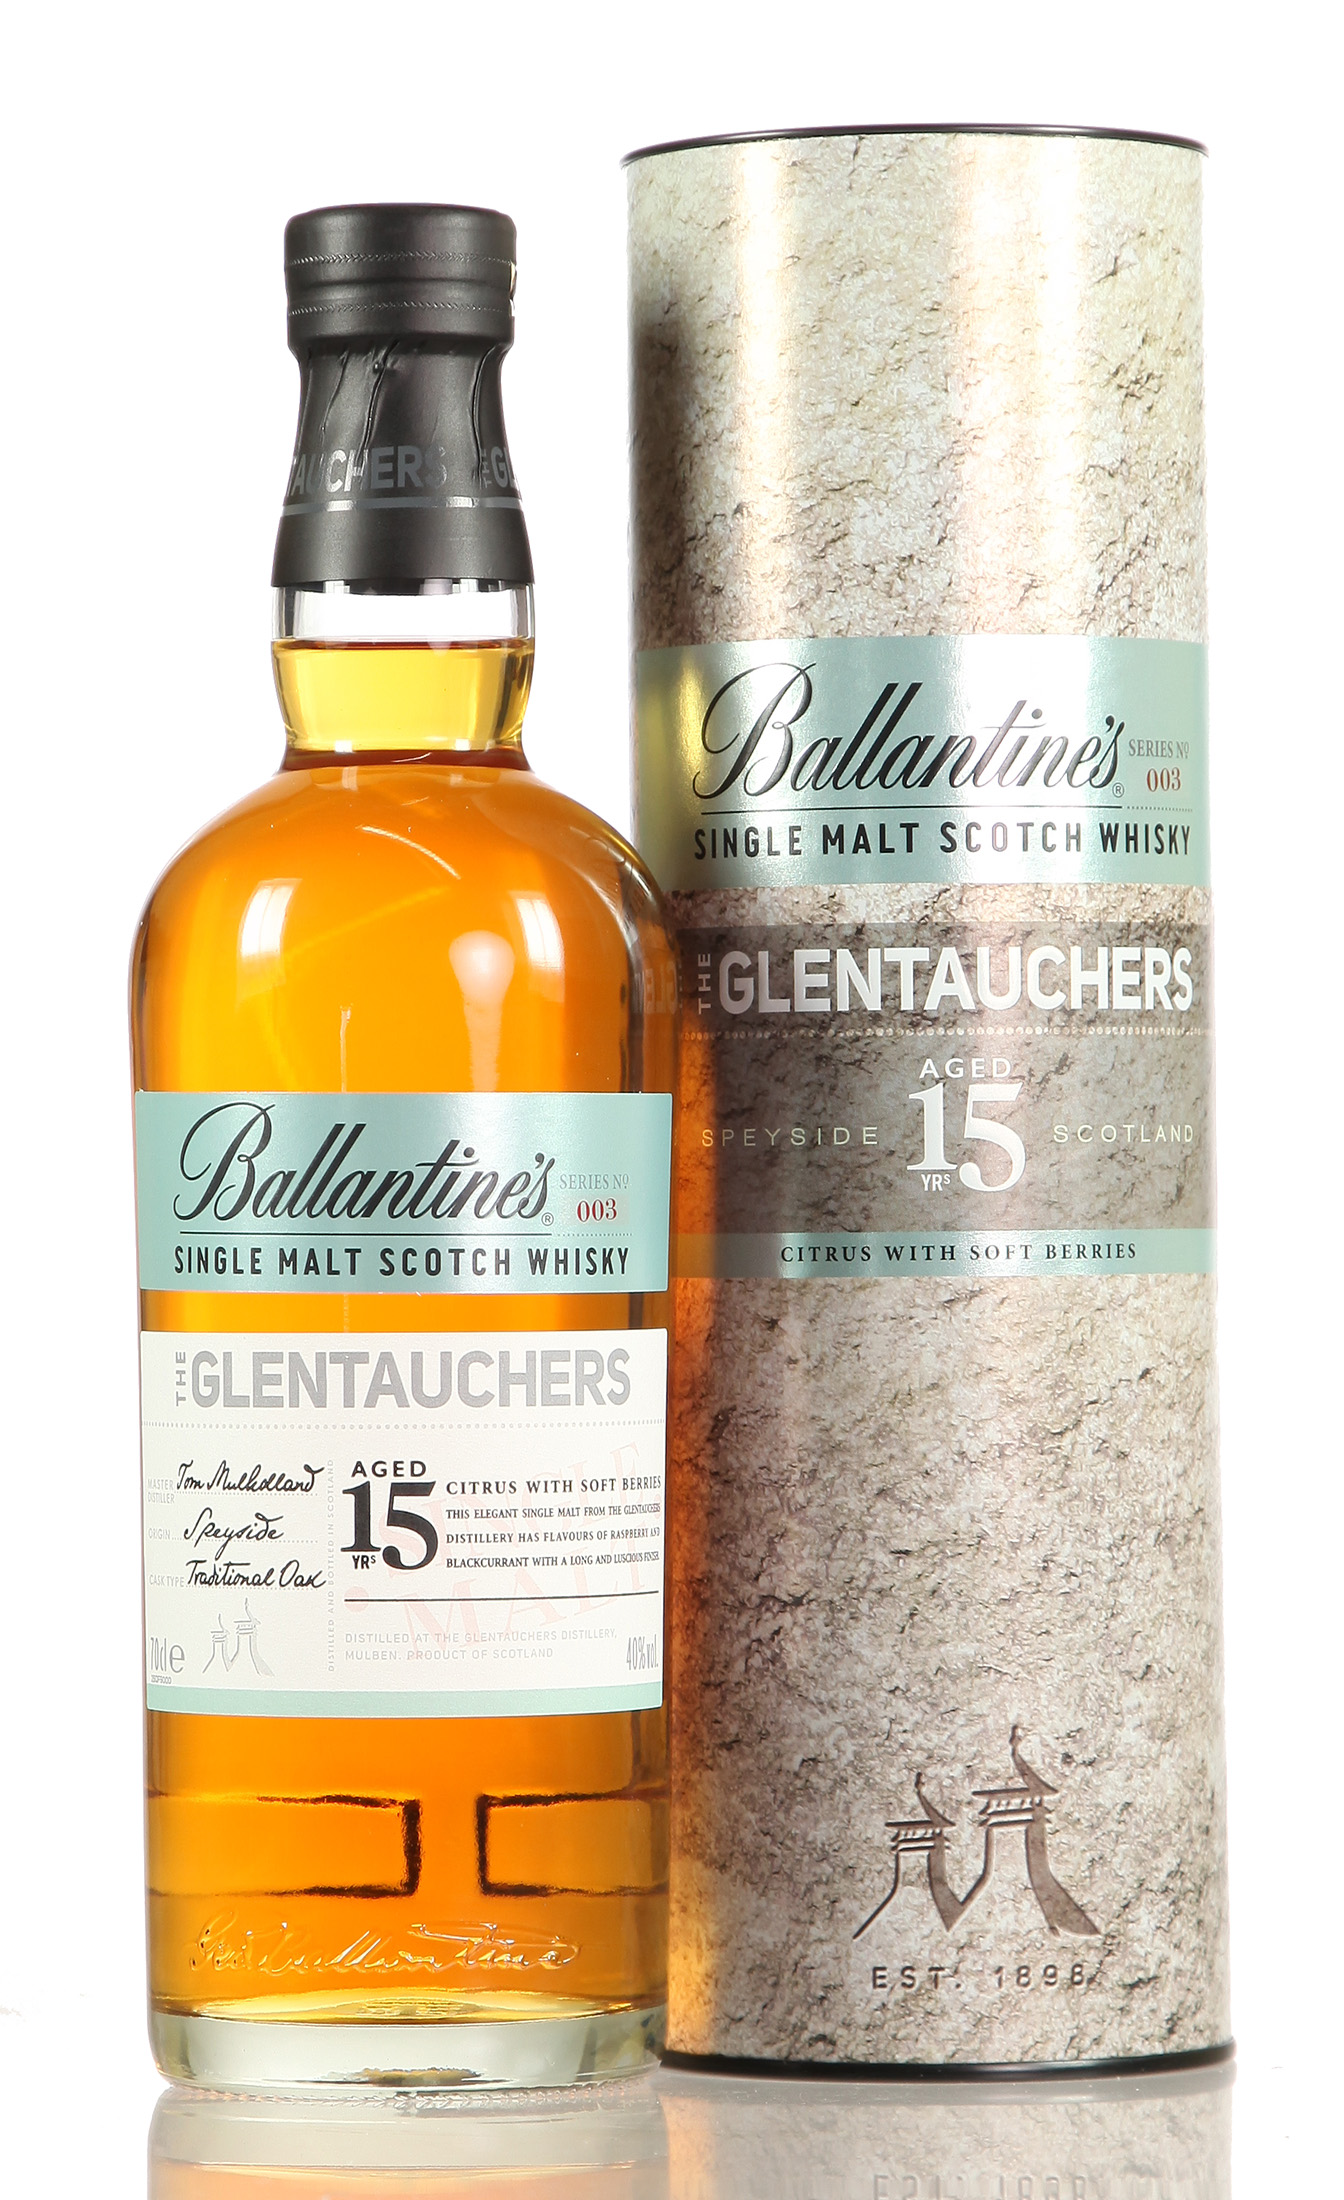 Glentauchers The Ballantine's